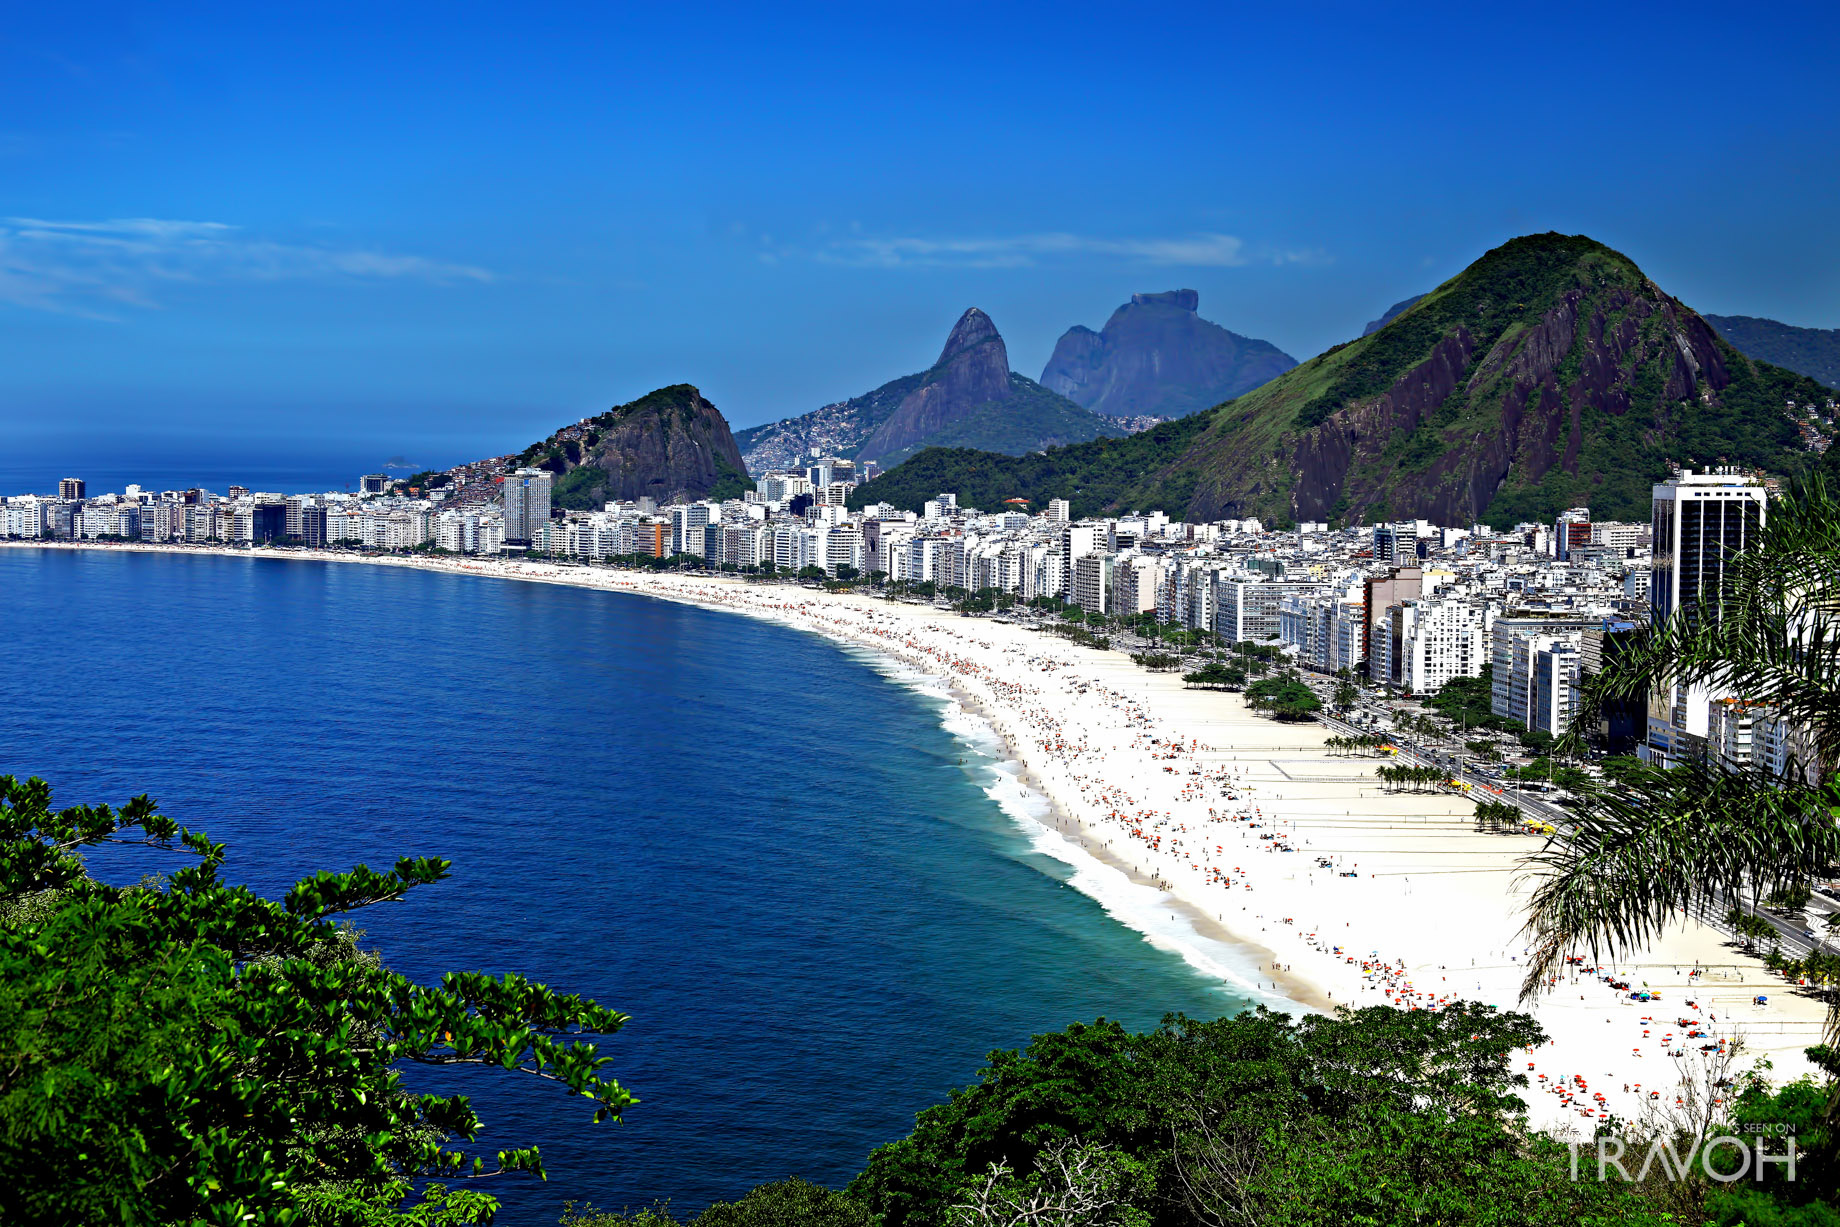 Copacabana Beach Exploring 10 Of The Top Beaches In Rio De Janeiro Brazil Travoh